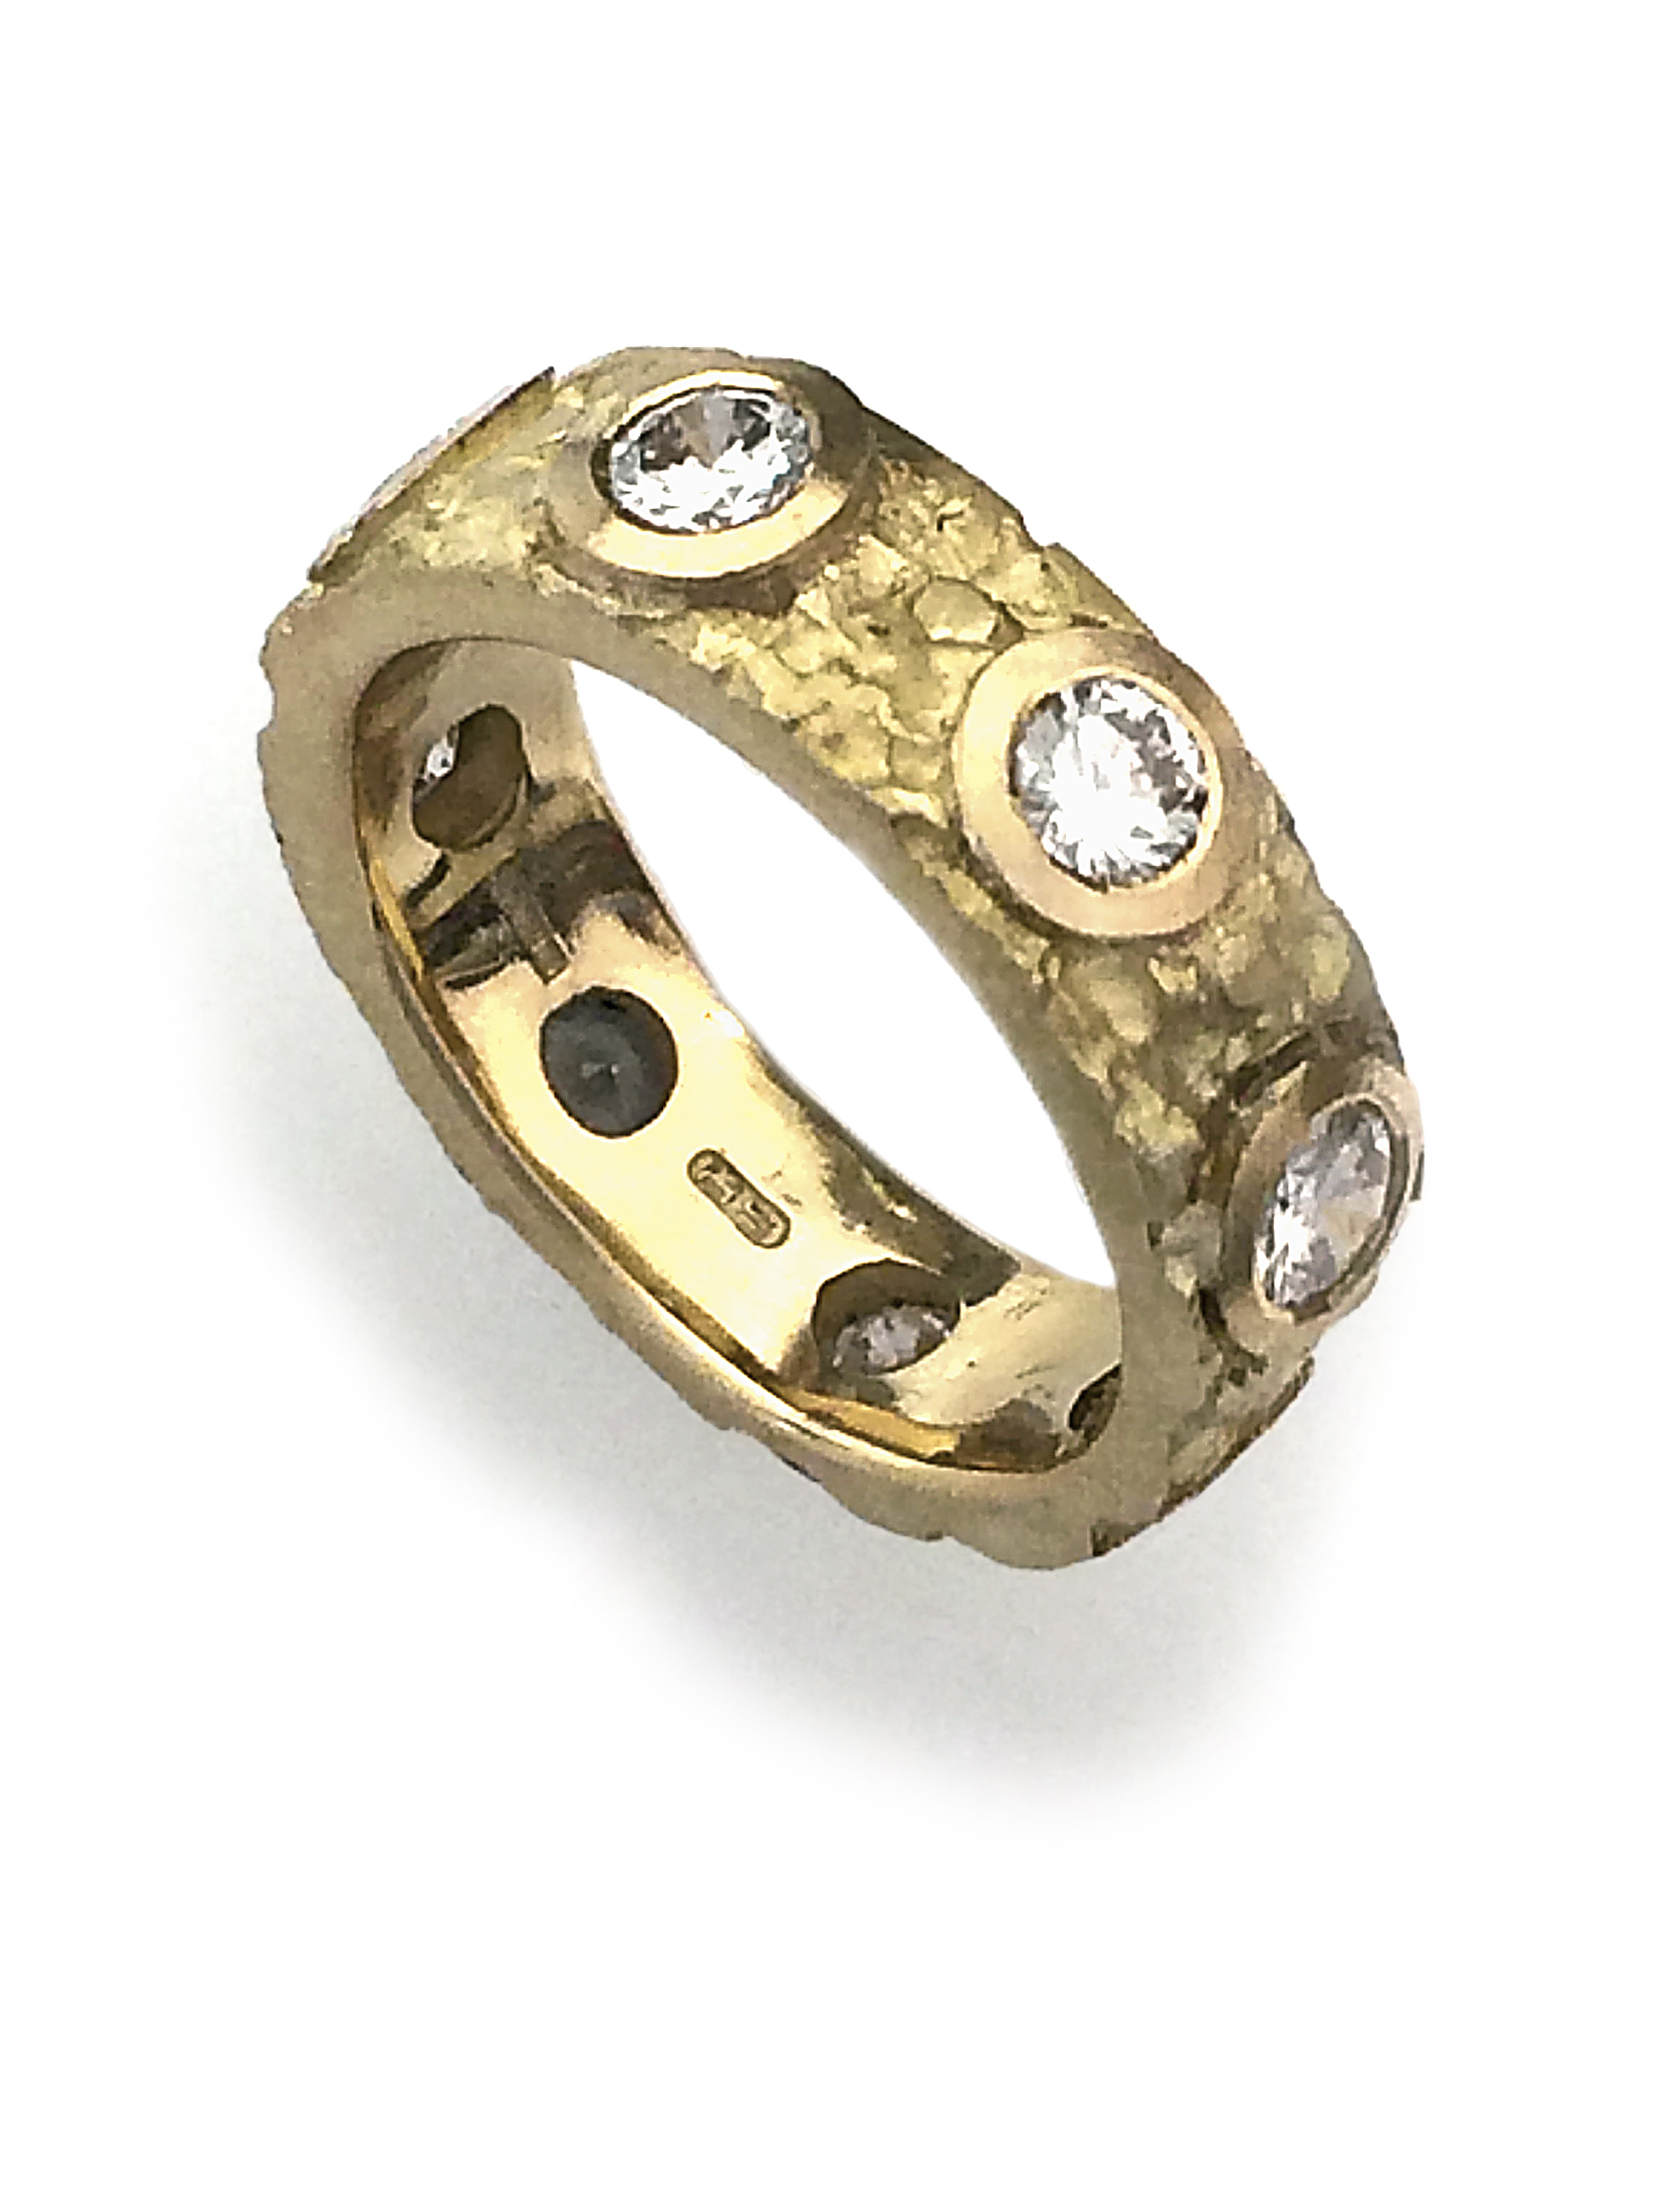 commission piece 1 etched 18ct gold and diamond ring